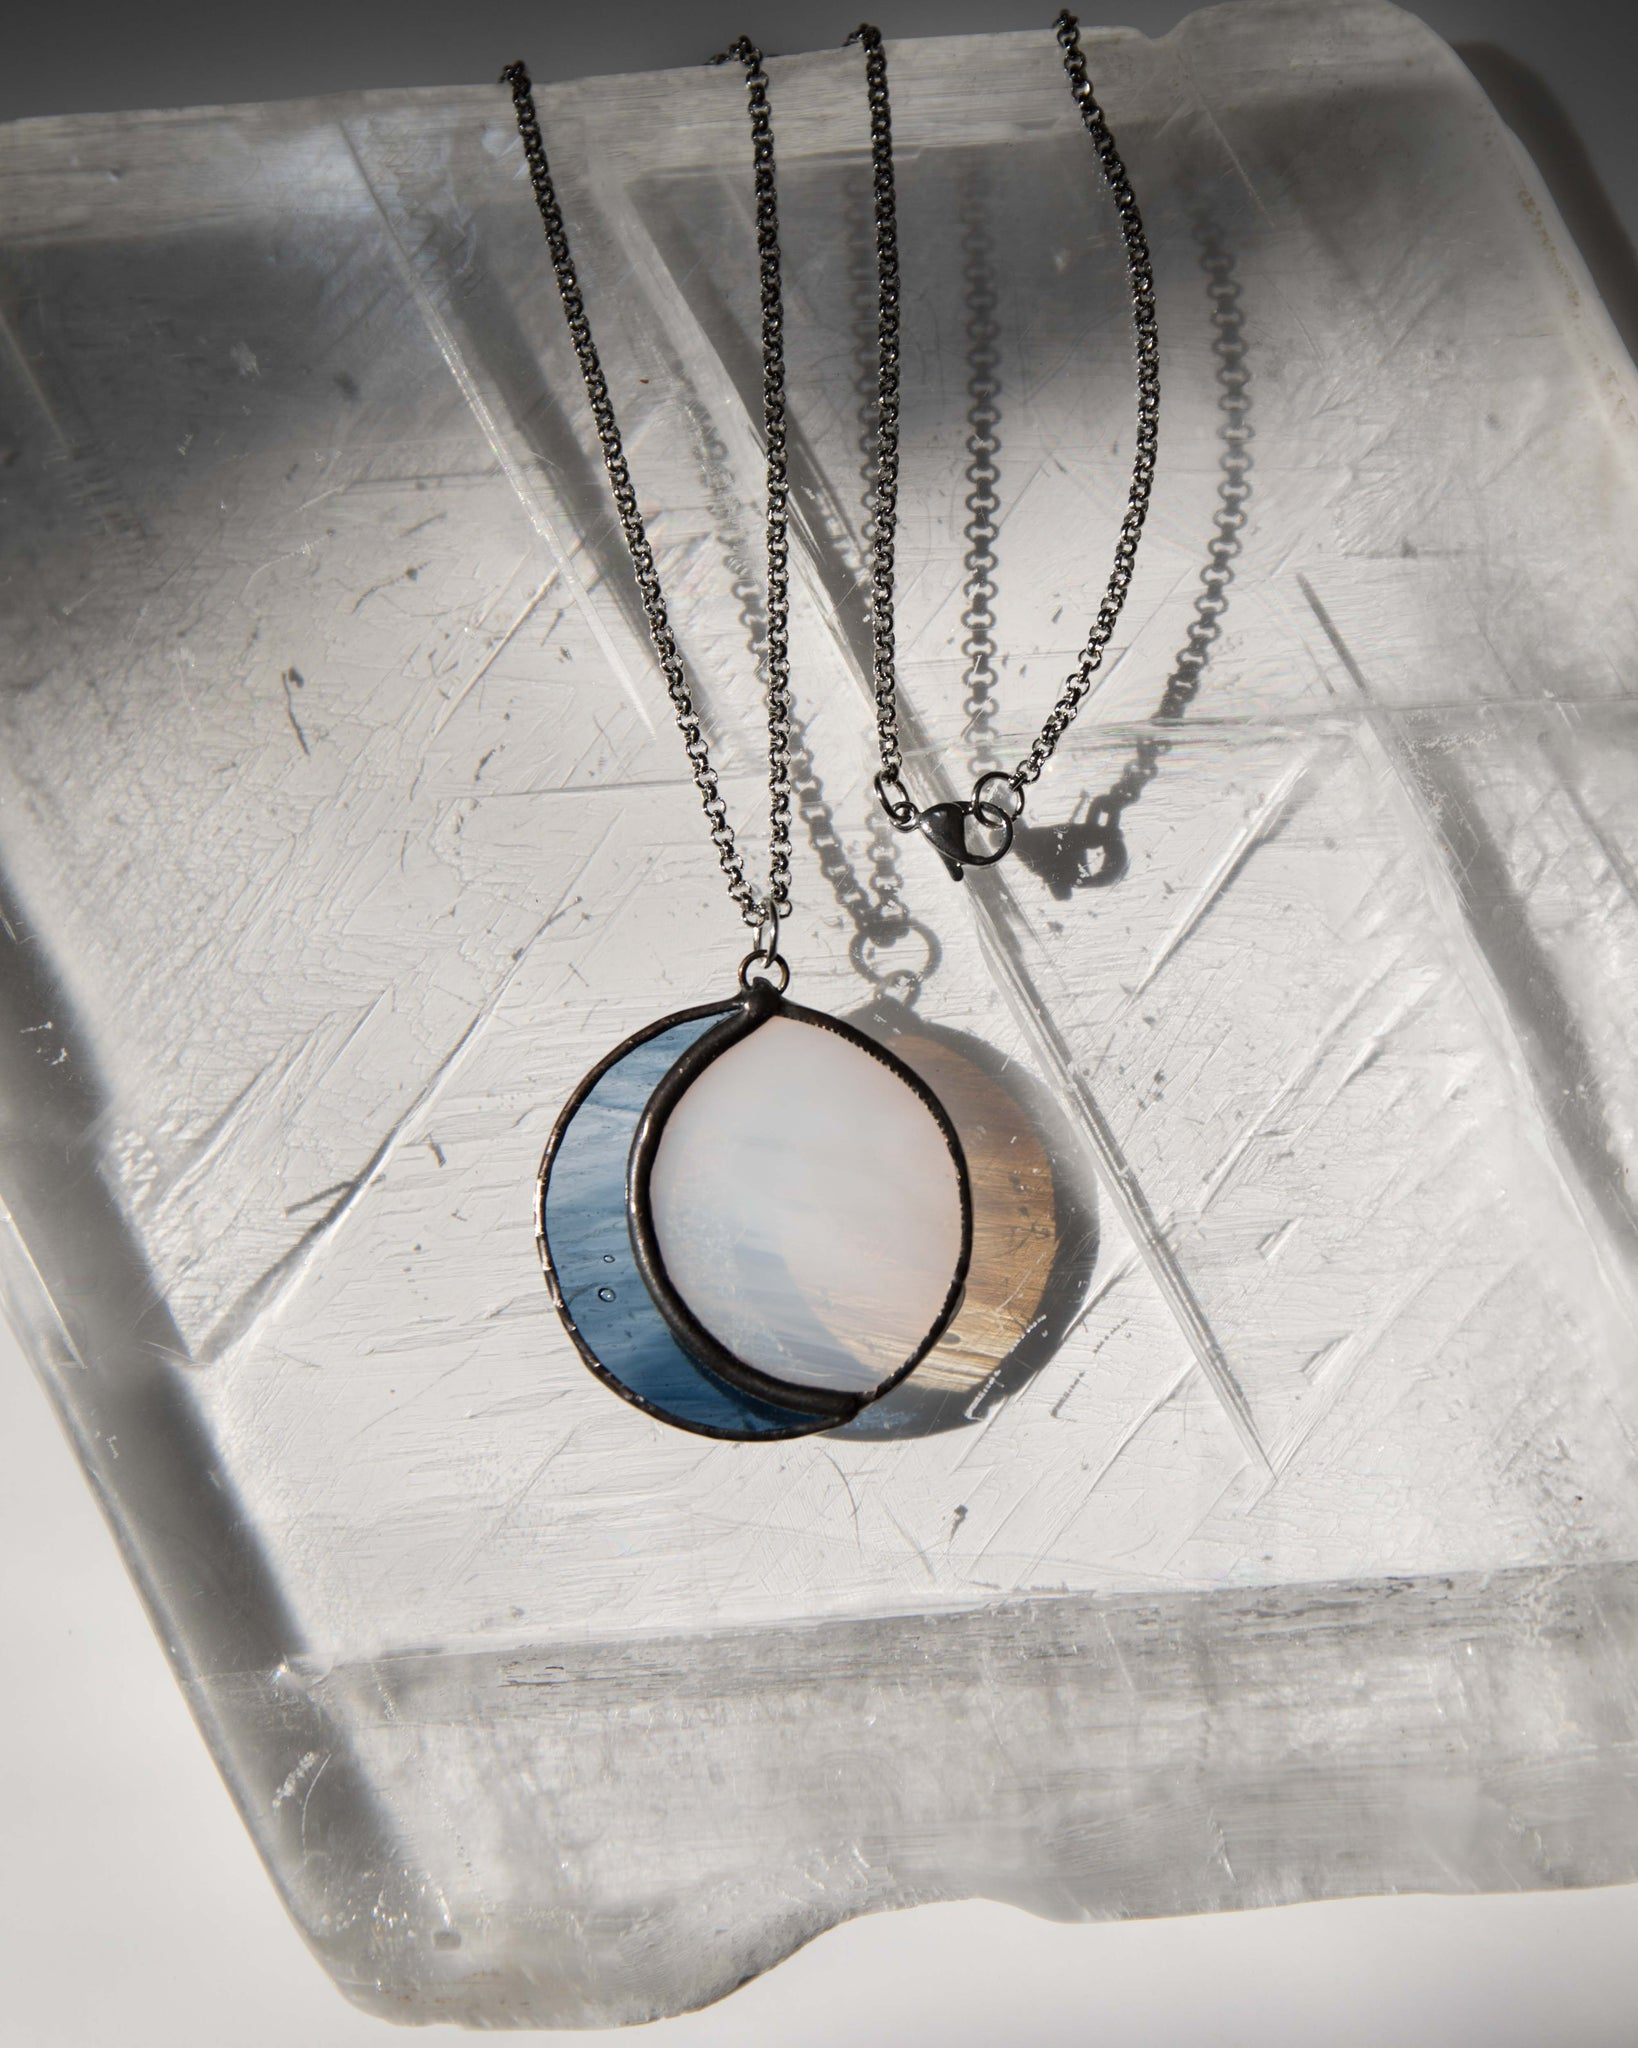 Full Moon Glass Necklace by Colin Adrian